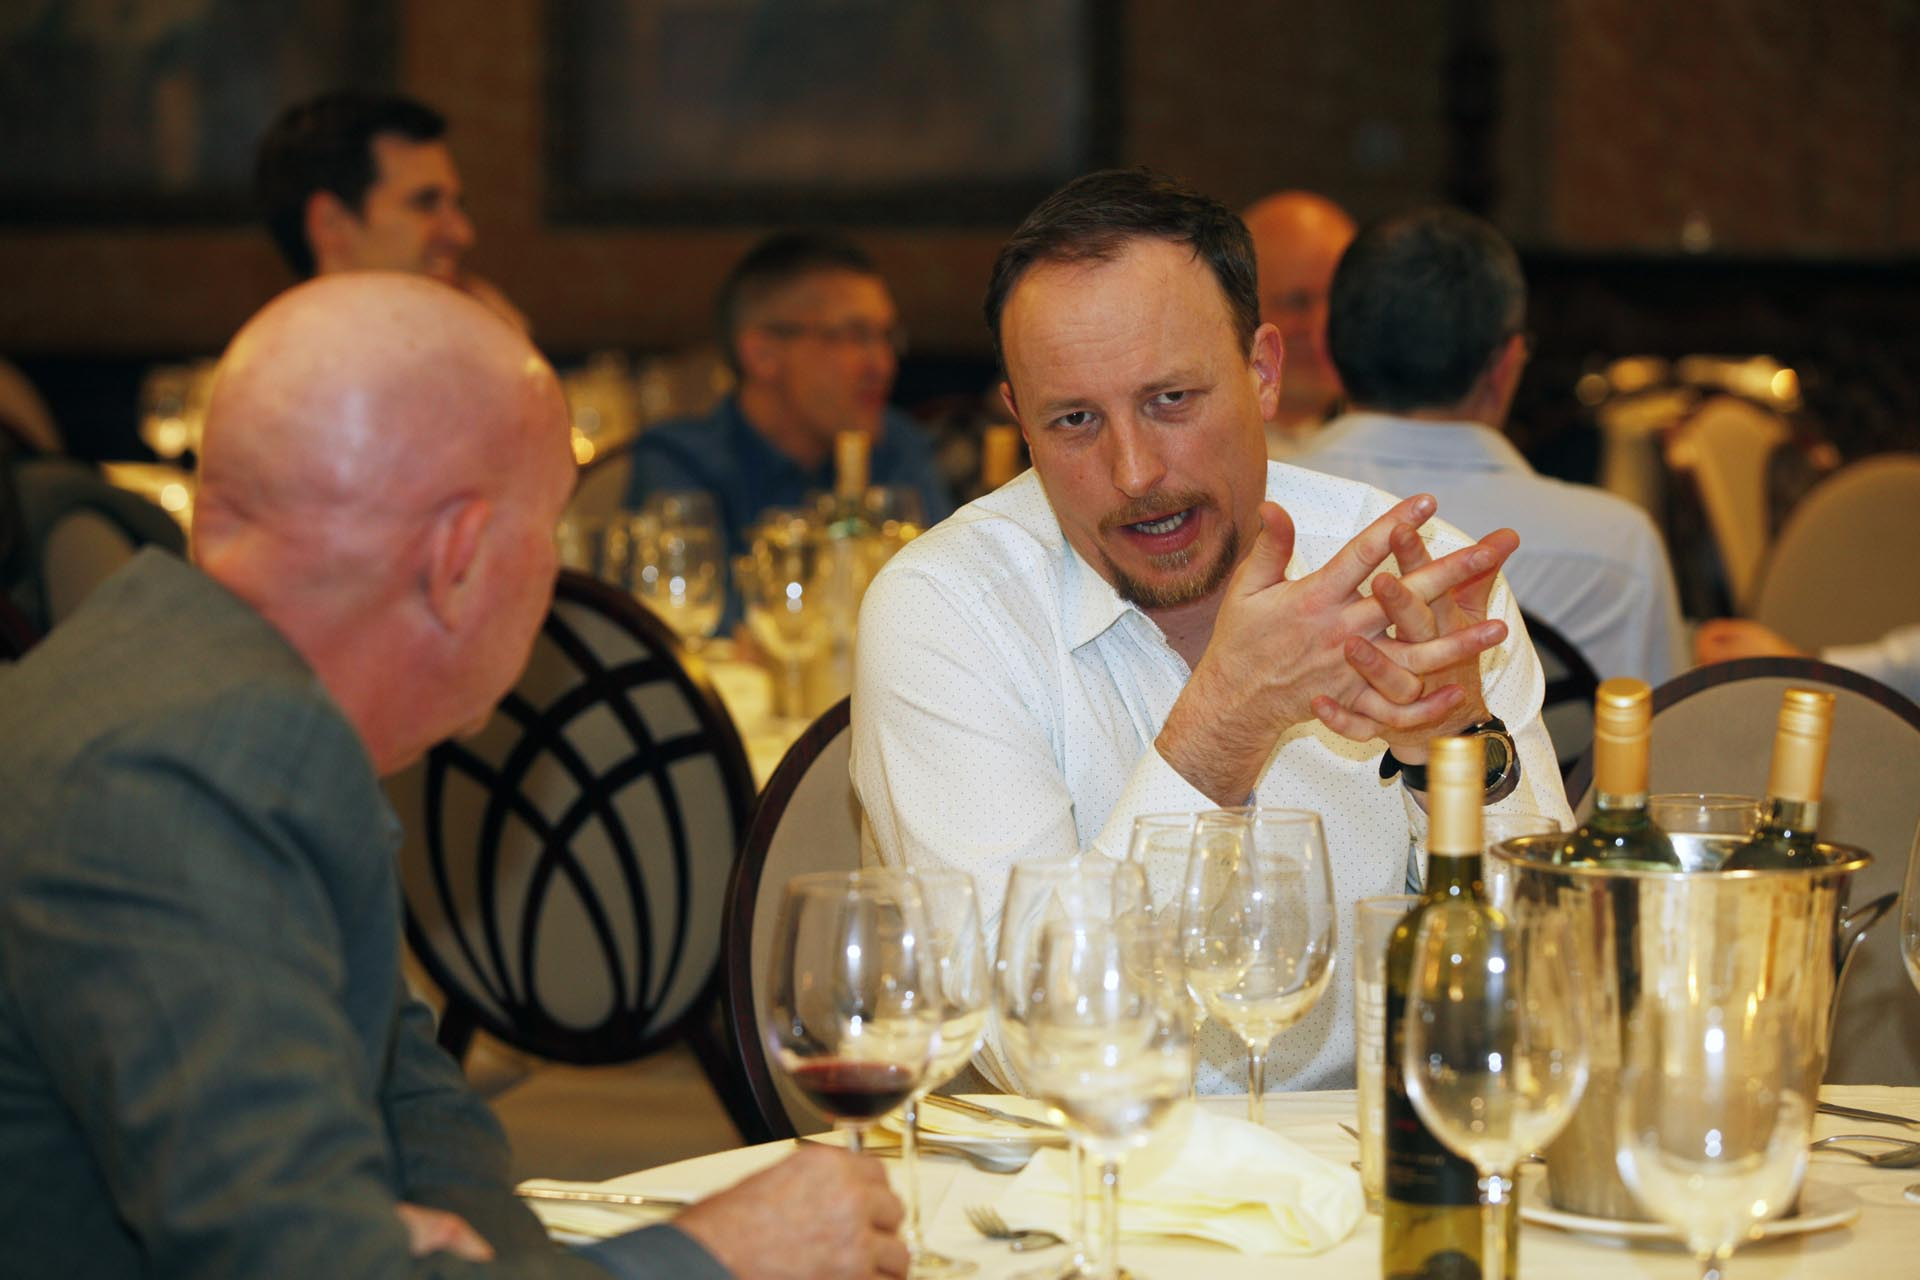 ISCVEx 2020 Networking Dinner Image 26